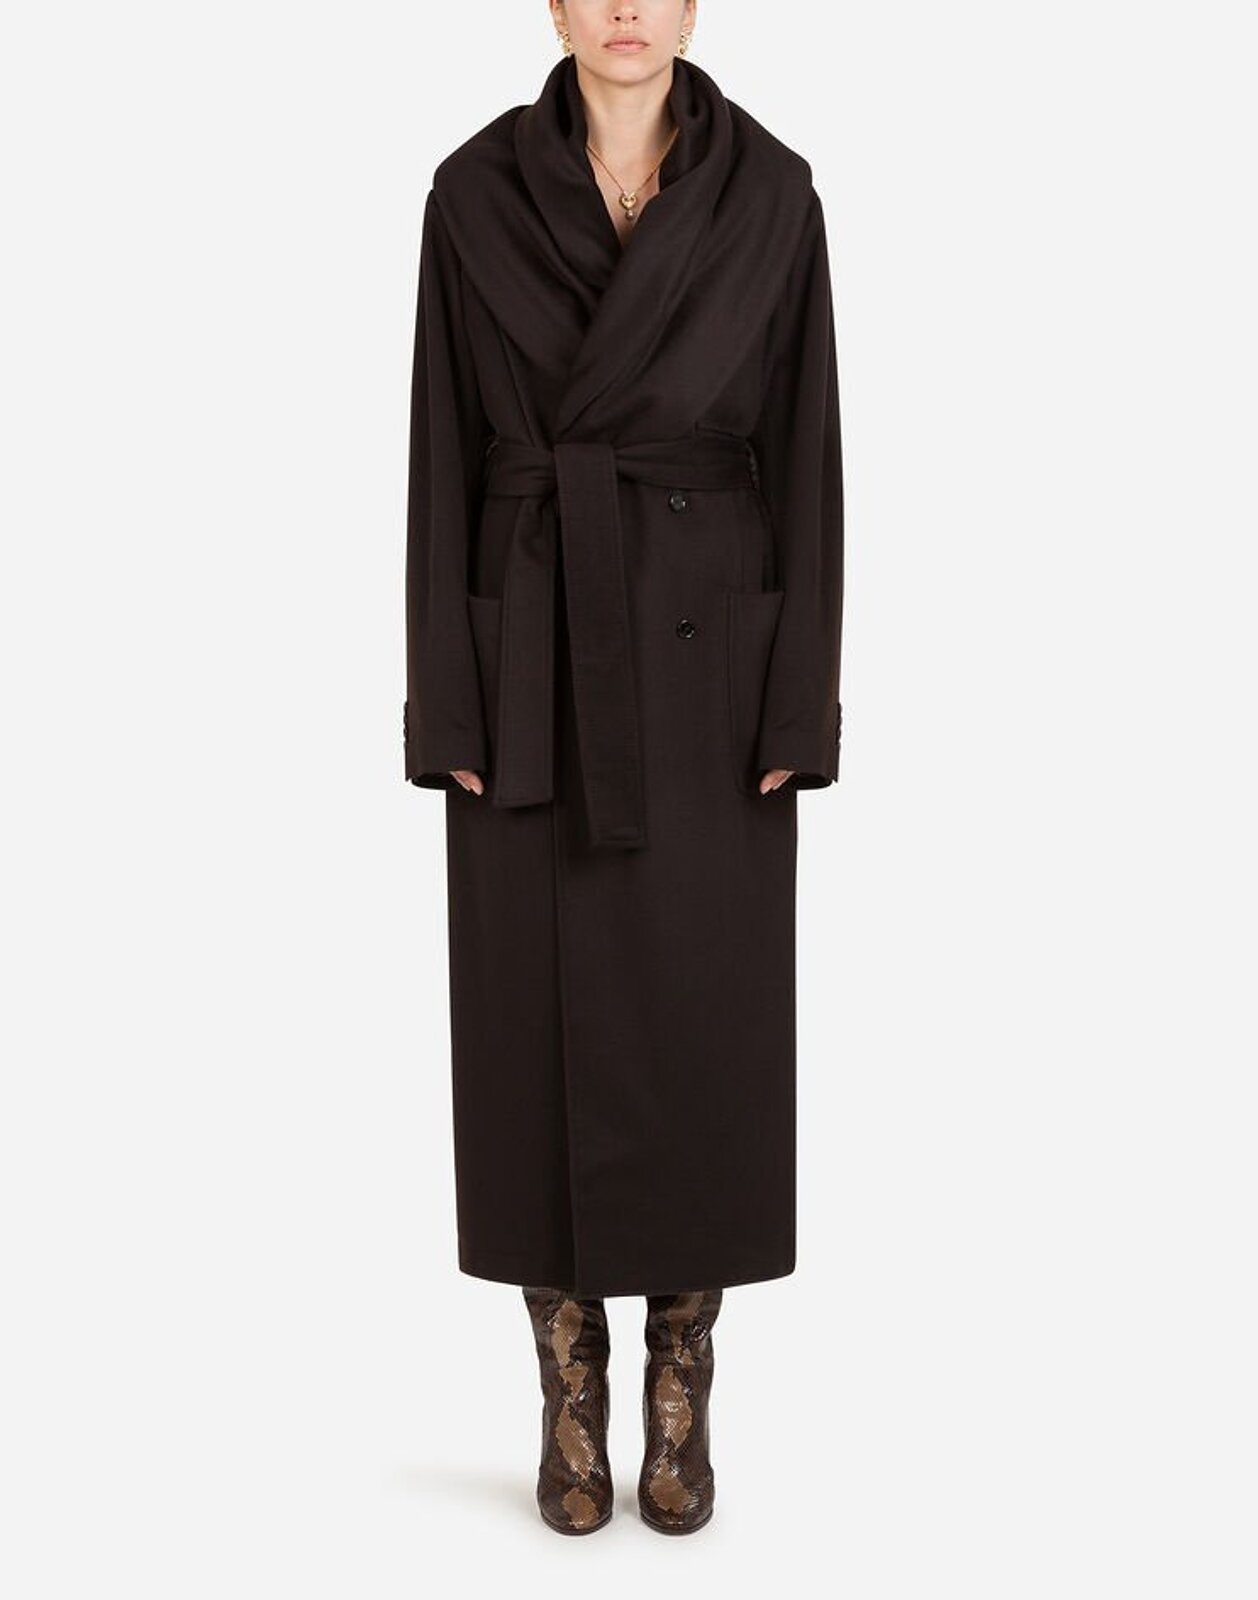 Cashmere Robe Coat With Belt - Dolce & Gabbana